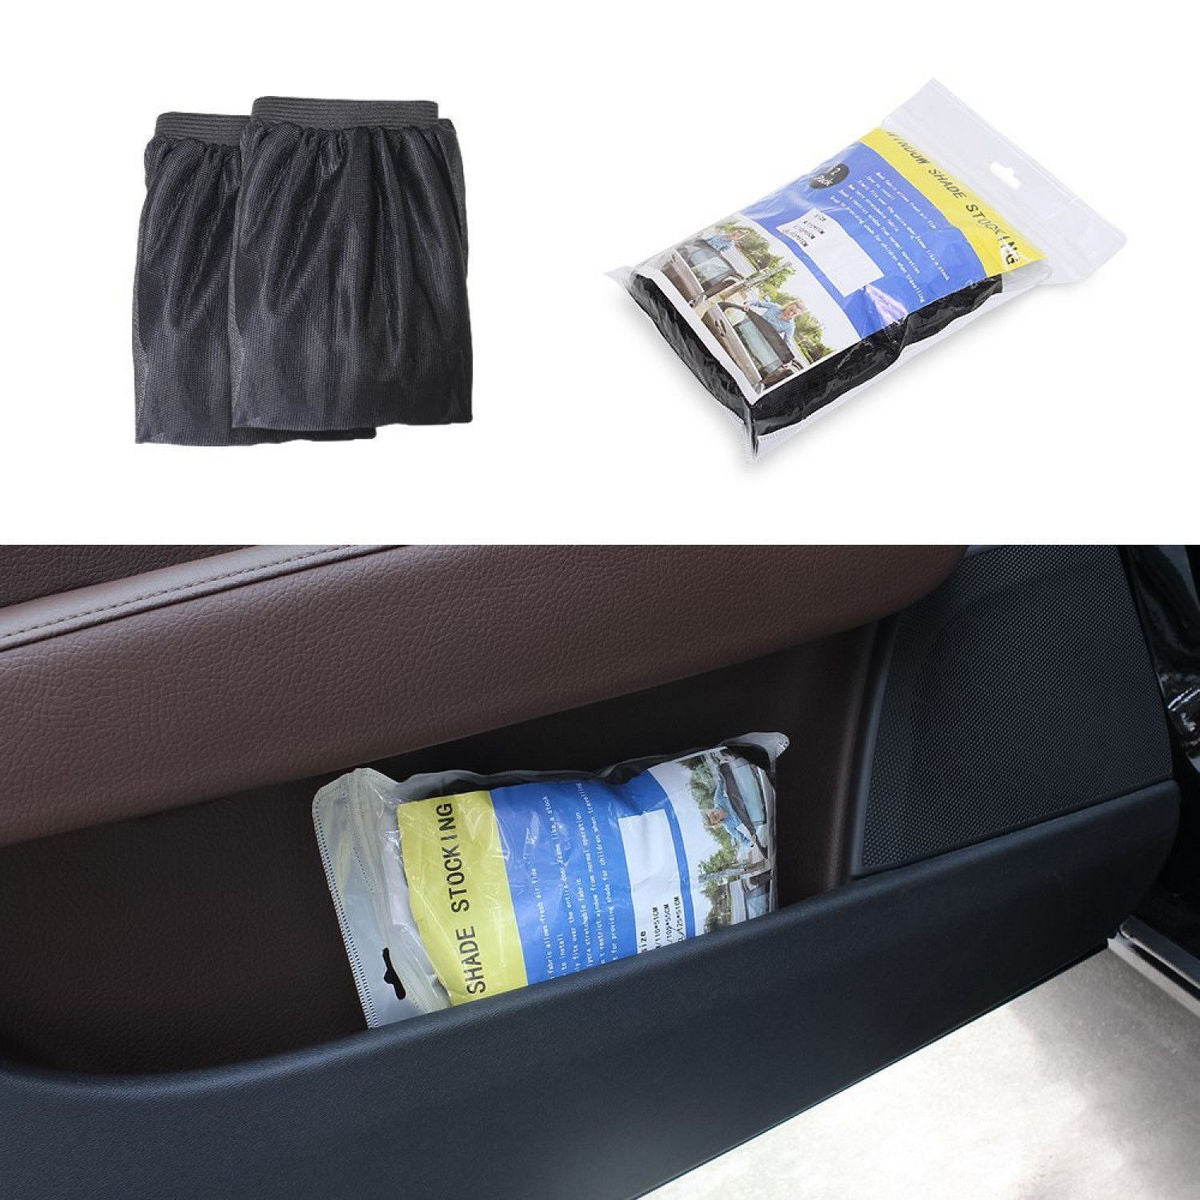 2Pcs/Pack Car-Styling Car Sun Shade Window Cover Sunshade Curtain UV Protection Shield Visor Mesh Dust Car Window Mesh Hot Sale